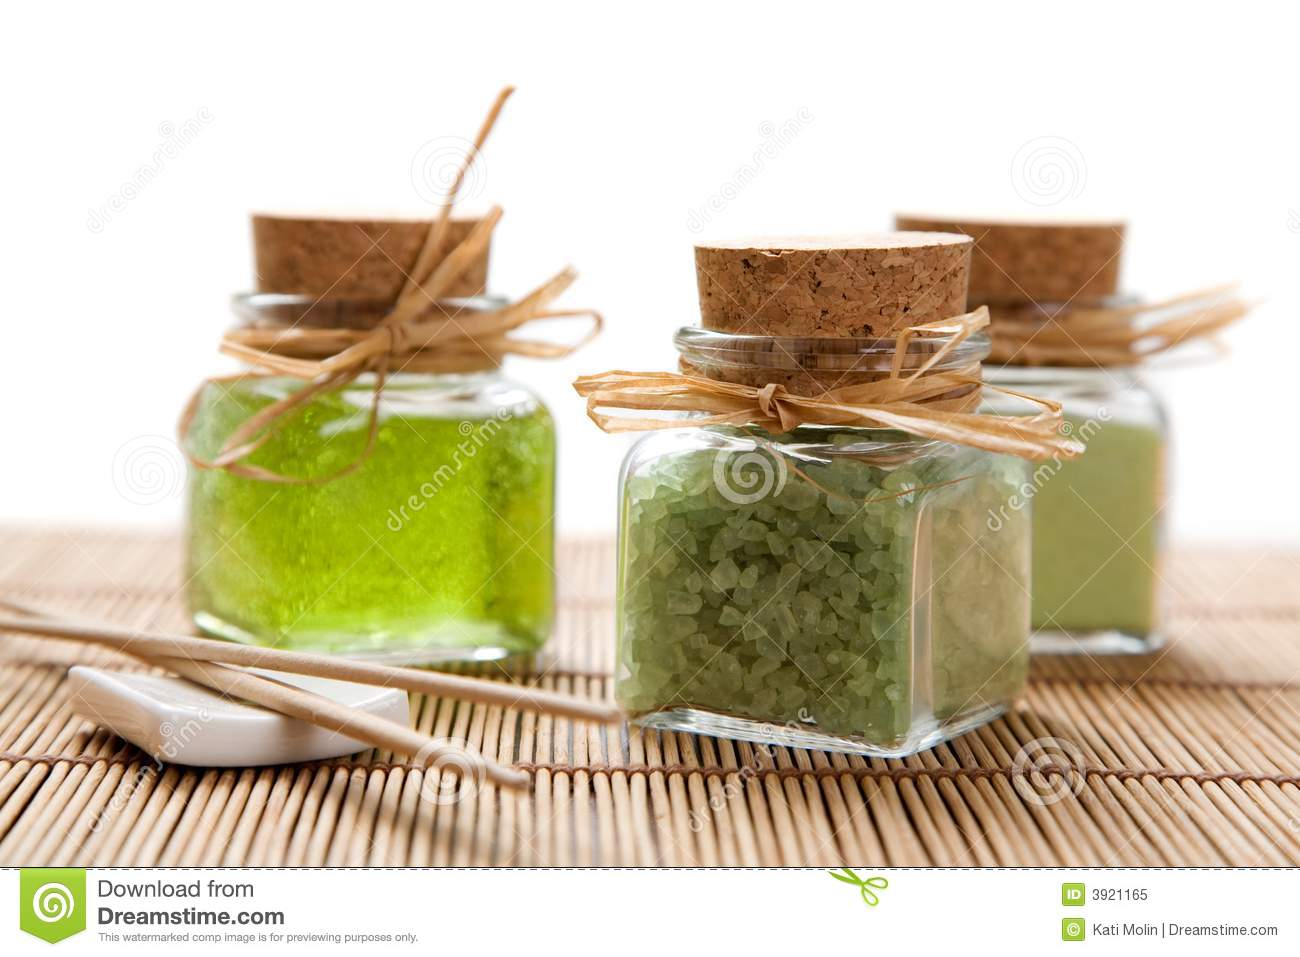 Bath Products : Bath Products Royalty Free Stock Photo - Image: 3921165